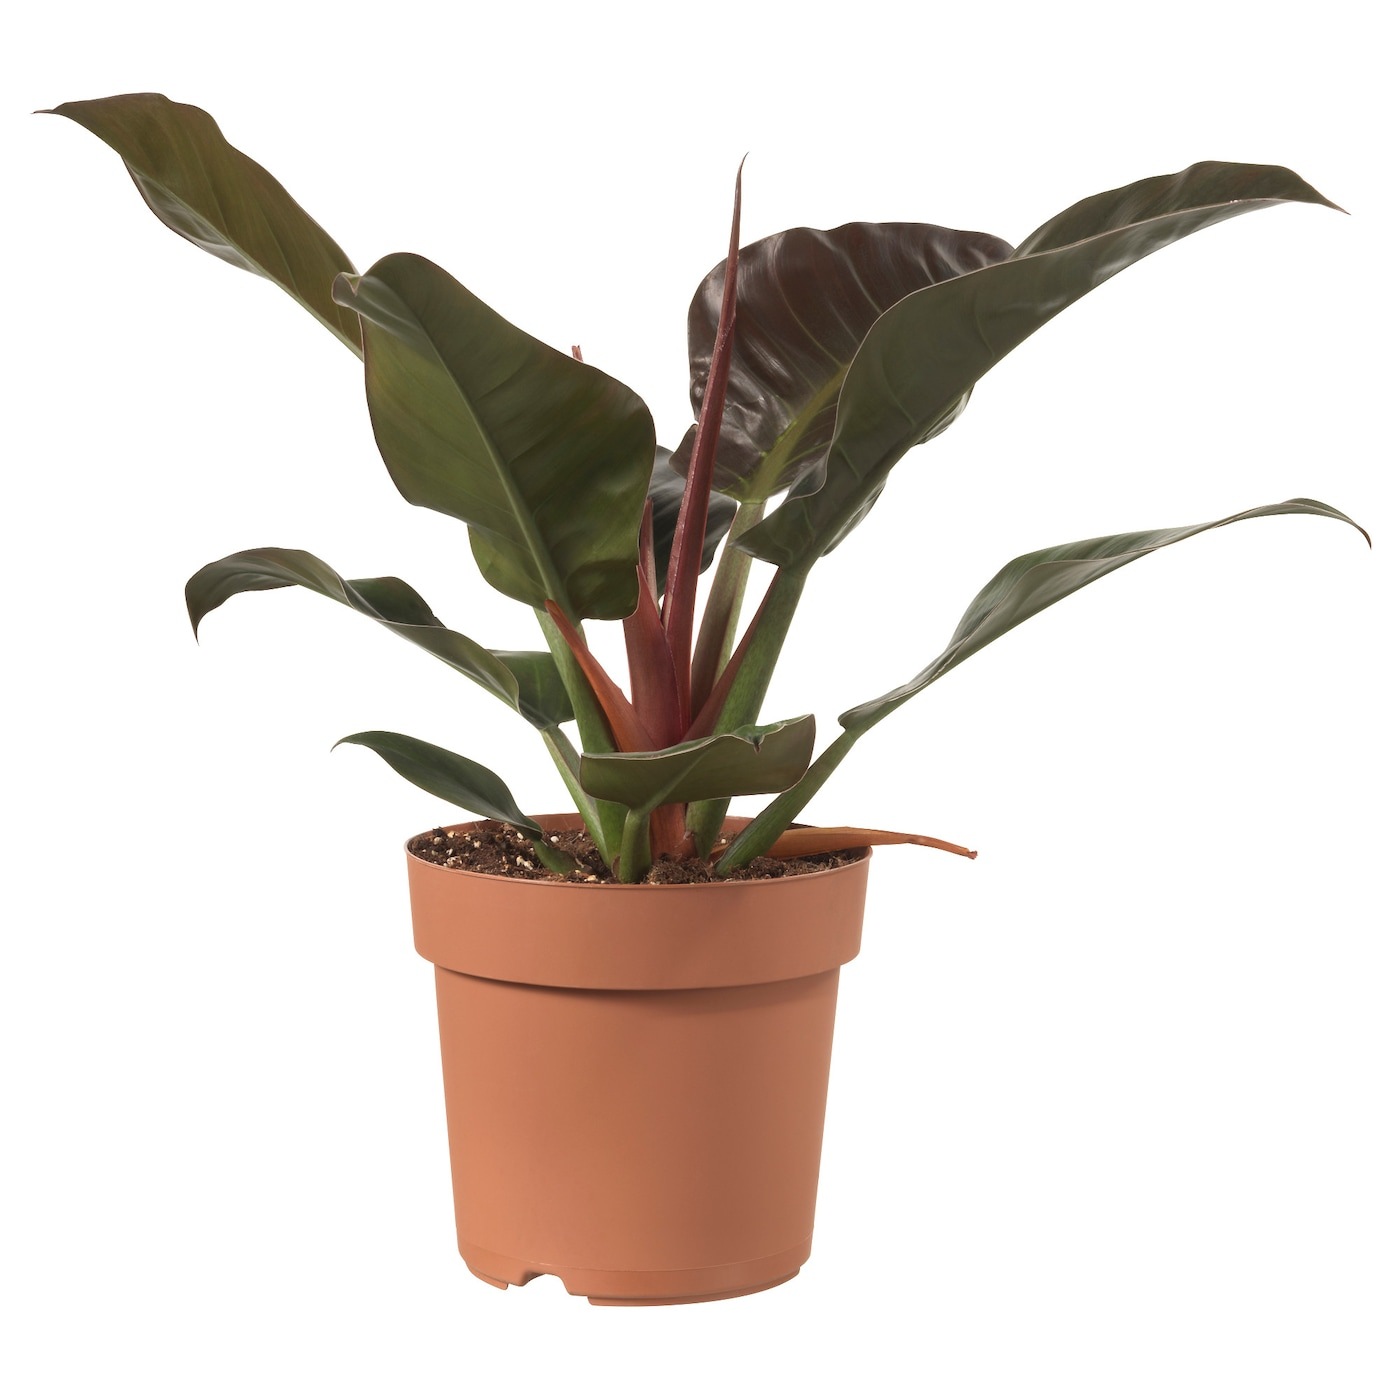 IKEA PHILODENDRON potplant